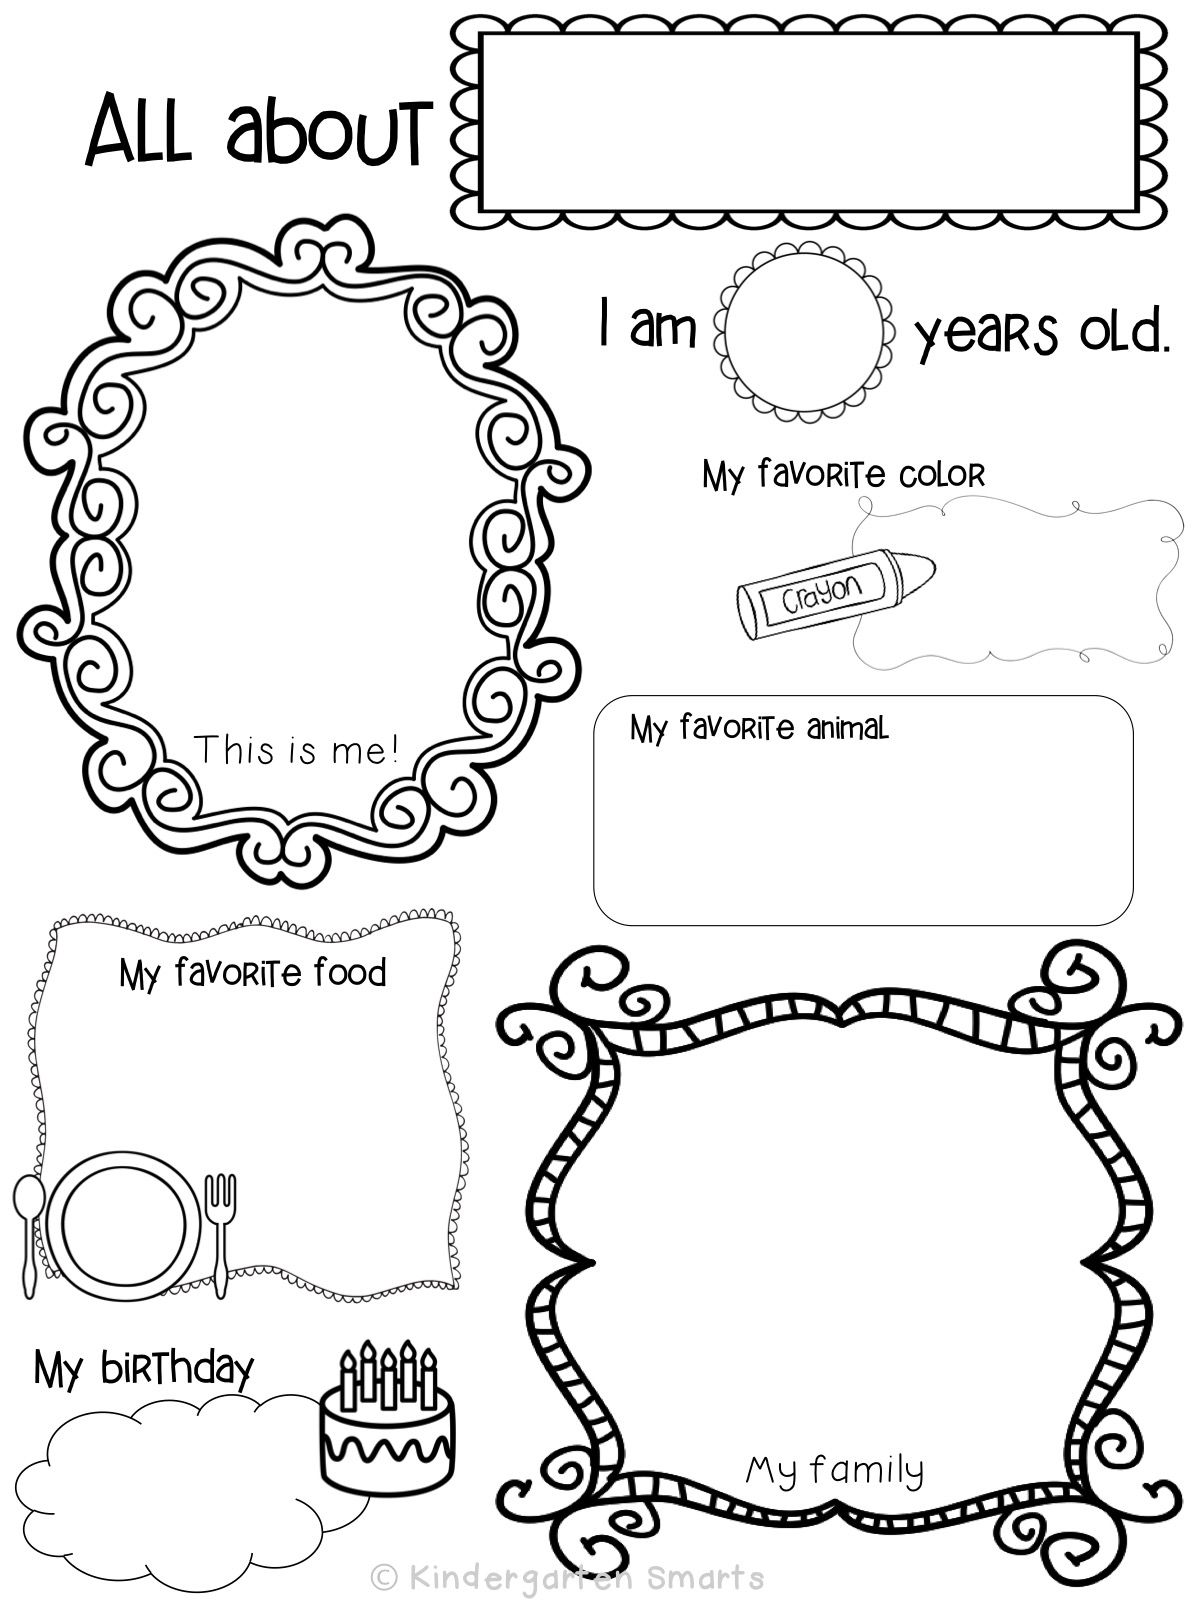 Kindergarten assessment & activities. FREEBIE Included